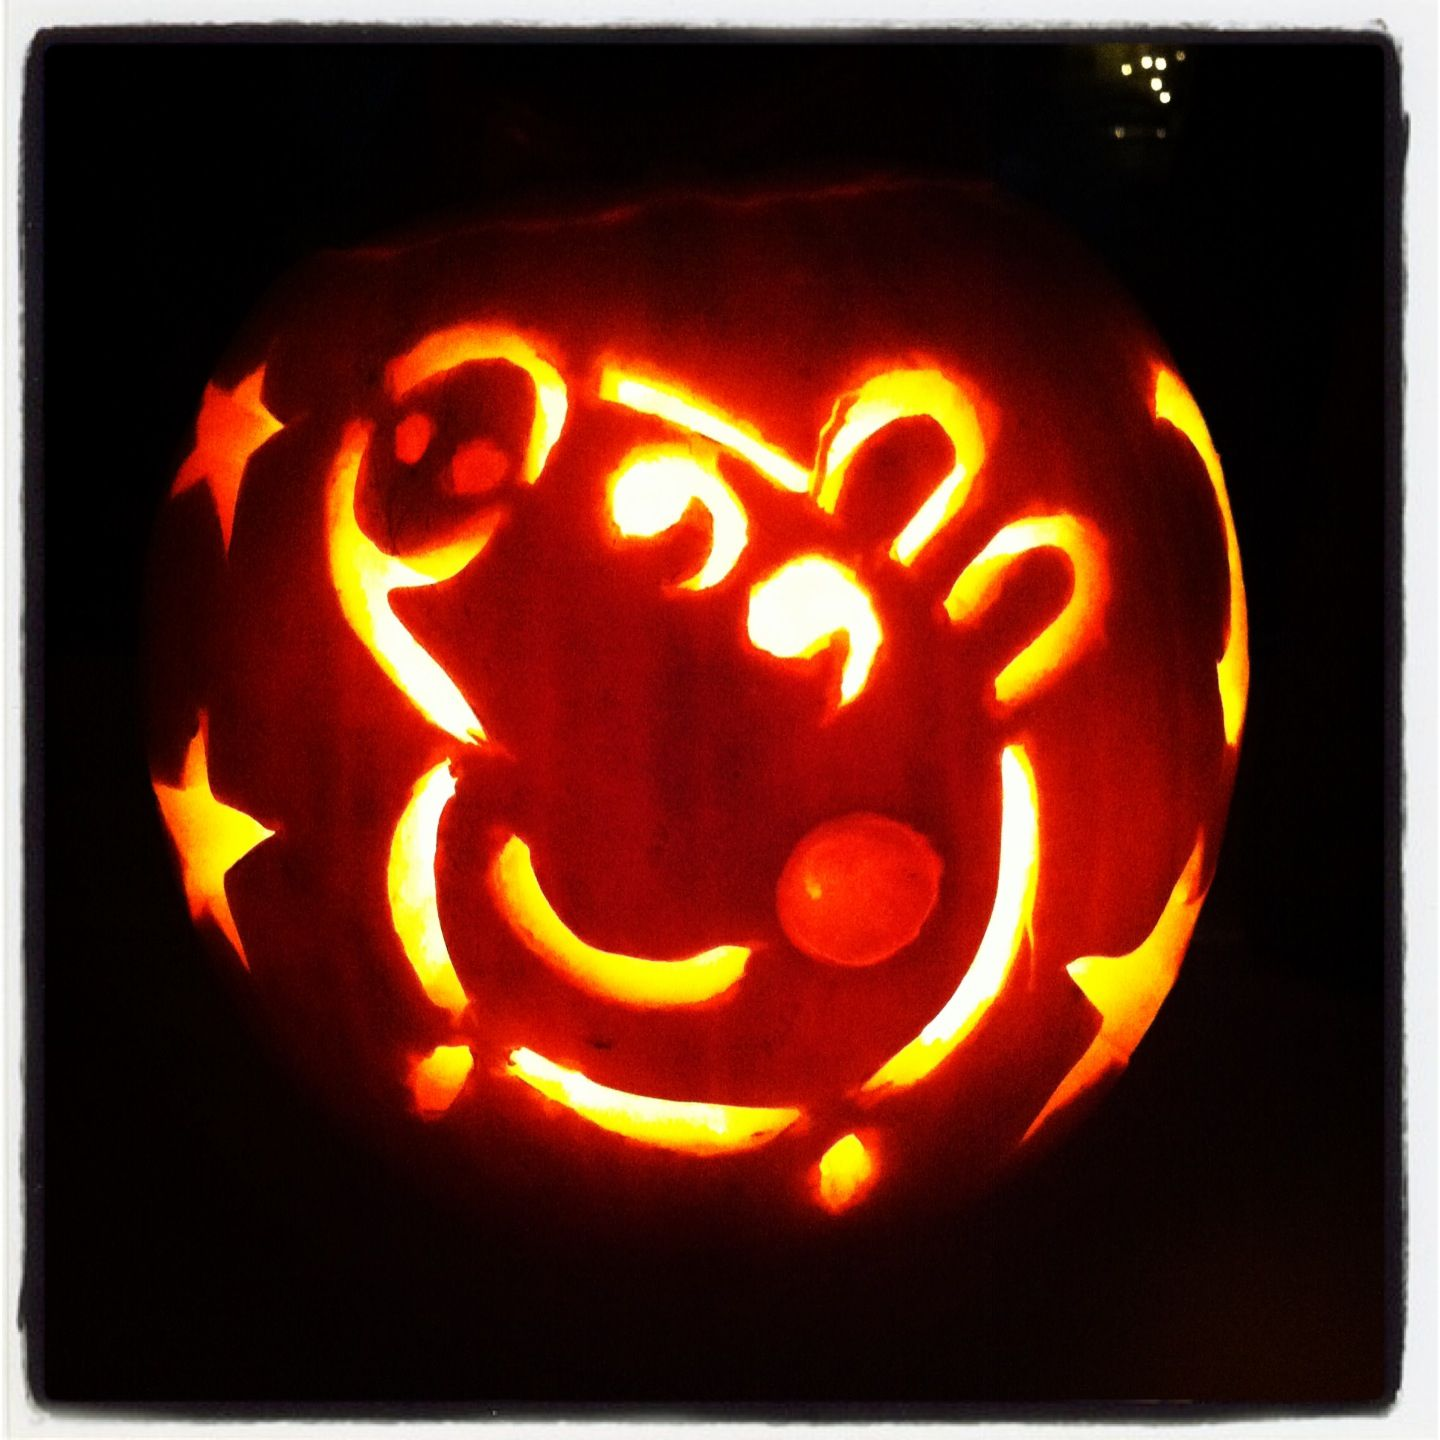 Peppa Pig Pumpkin Finally Carved Out Halloween Pumpkin Designs Cute Pumpkin Carving Disney Pumpkin Carving